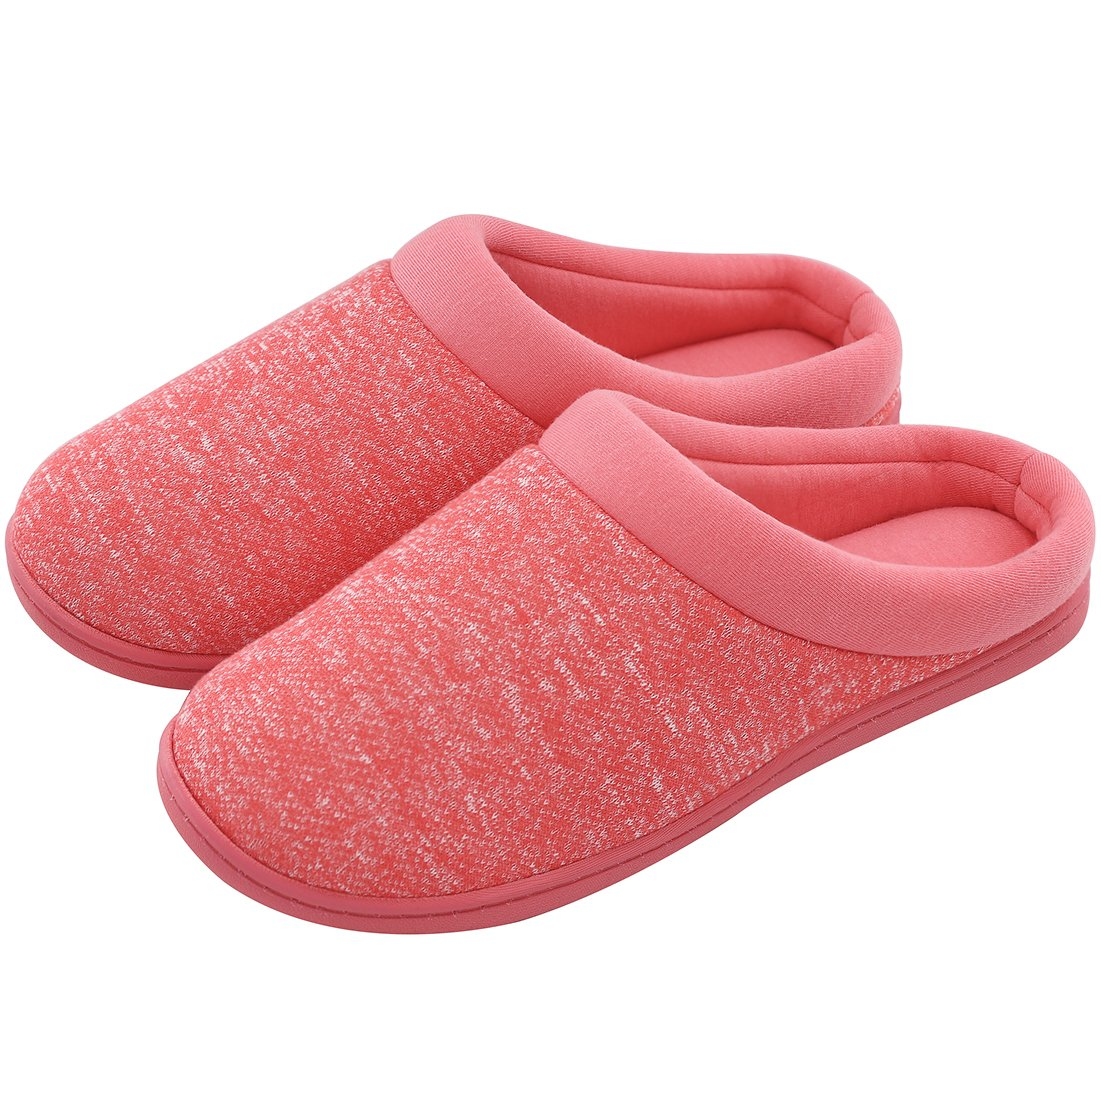 Women's Comfort Slip On Memory Foam French Terry Lining Indoor Clog House Slippers (Medium / 7-8 B(M) US, Red) by HomeTop